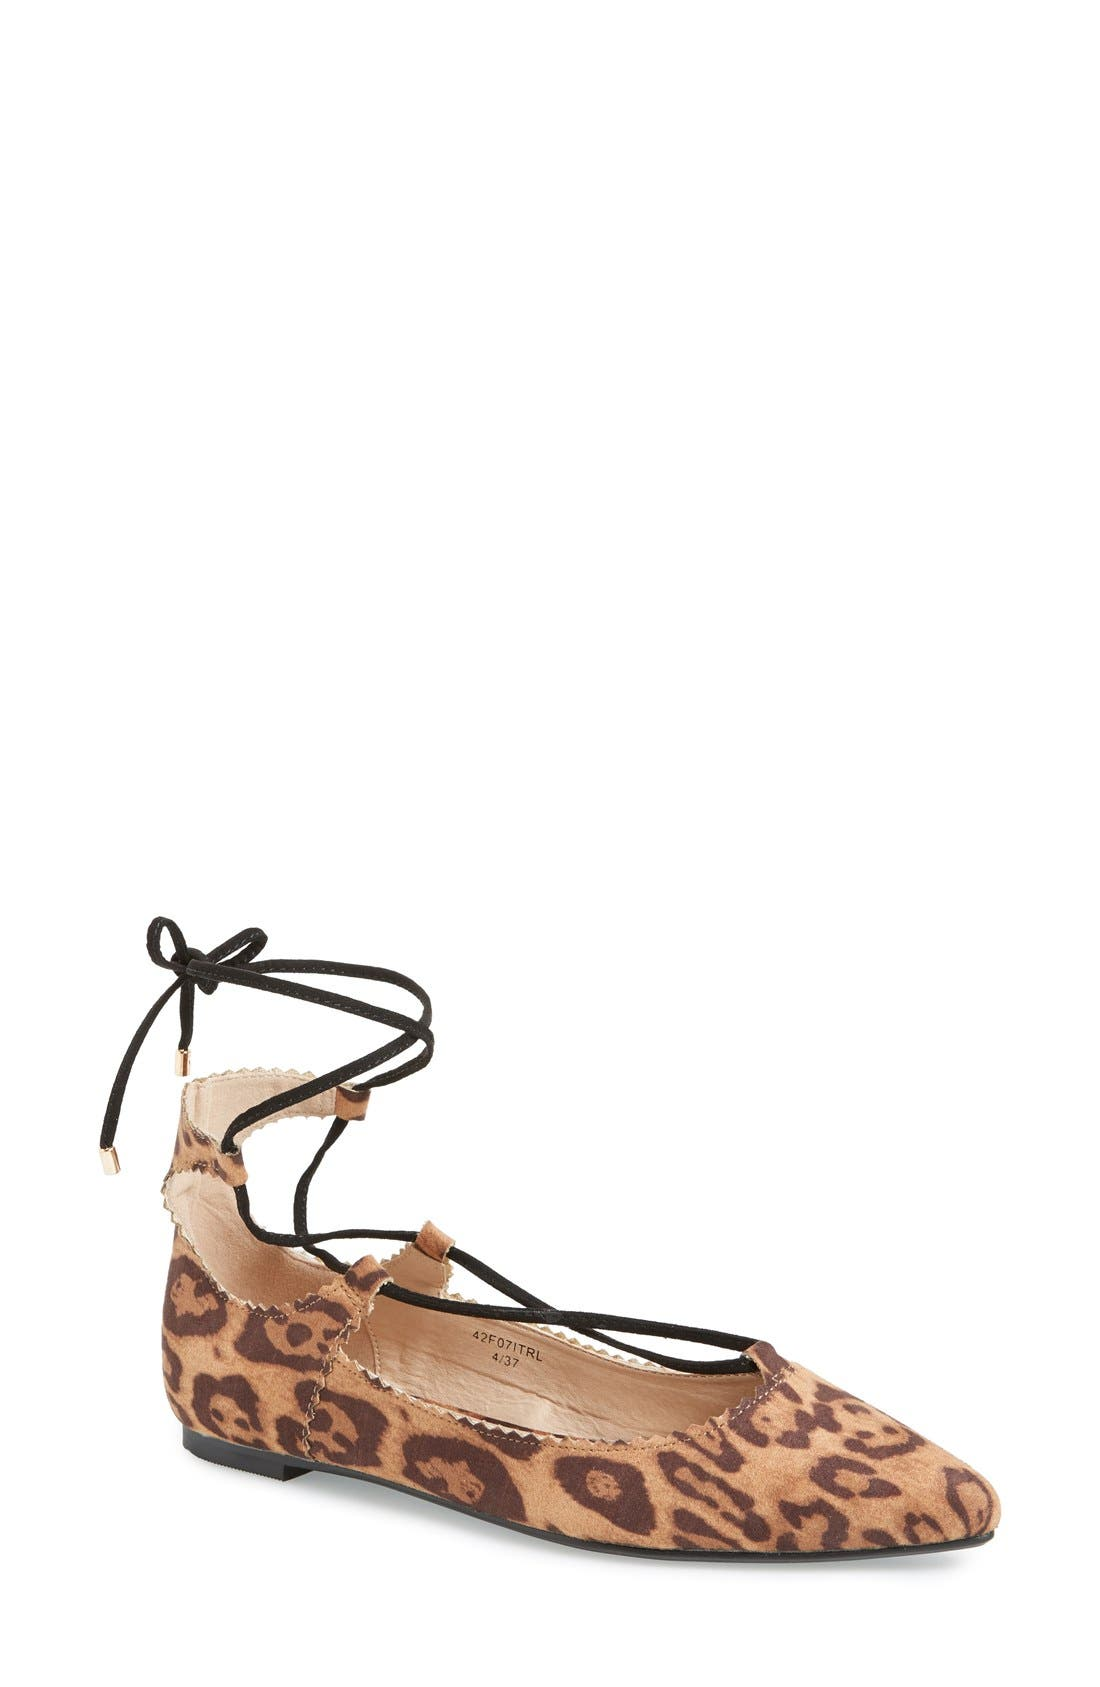 'Finest' Pointy Toe Ghillie Flat,                             Main thumbnail 1, color,                             Brown Multi